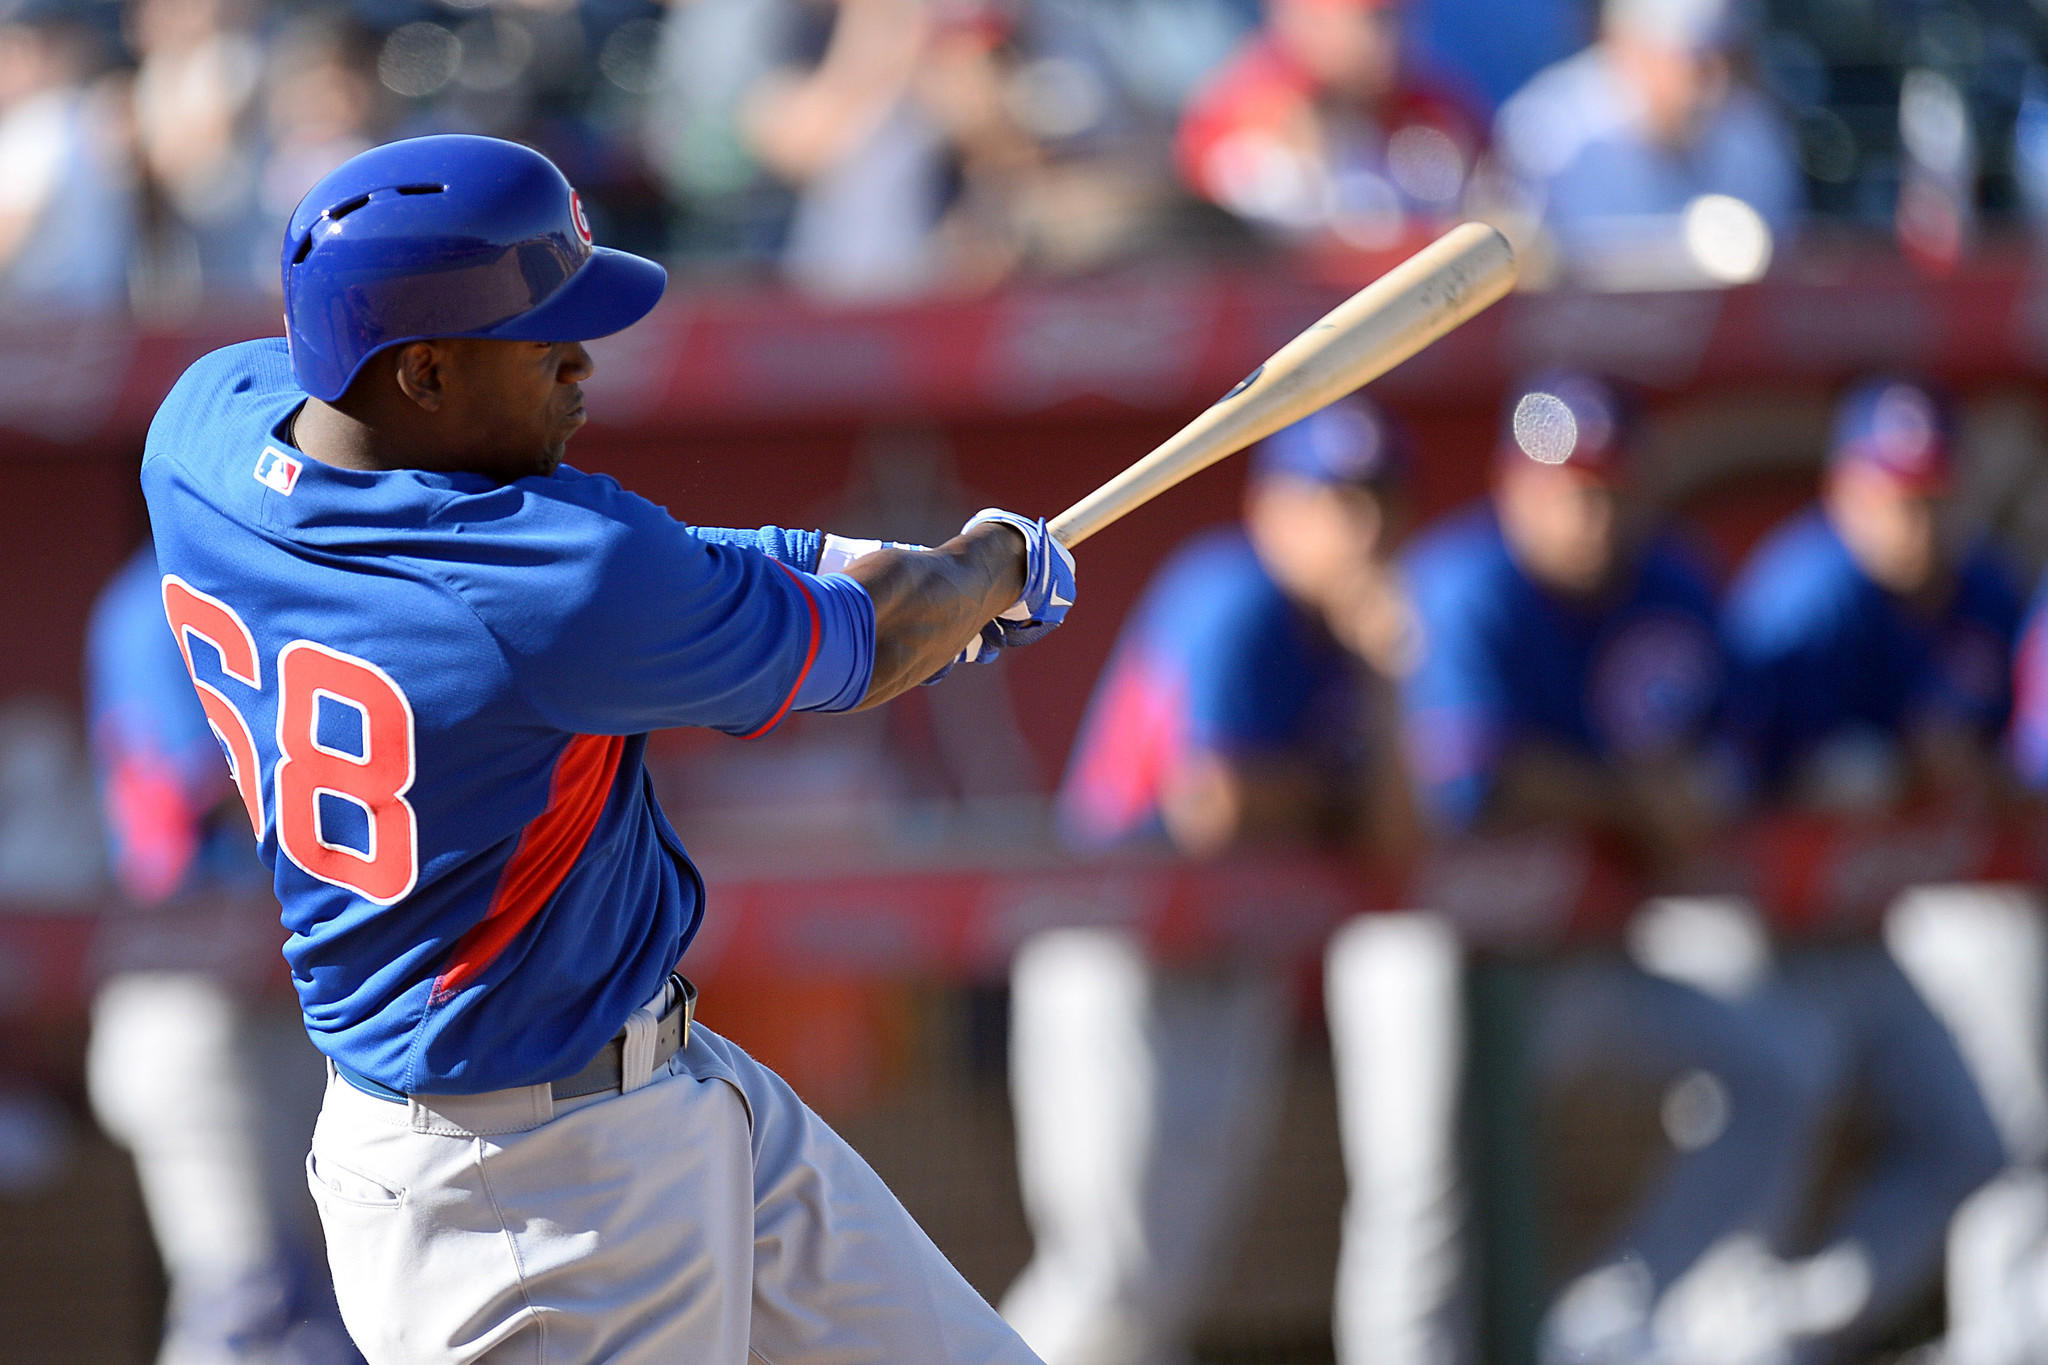 Chicago Cubs right fielder Jorge Soler (68) hits a triple to drive in the go ahead run in the ninth inning of a spring training game against the Los Angeles Angels at Tempe Diablo Stadium. The Cubs won 3-2.